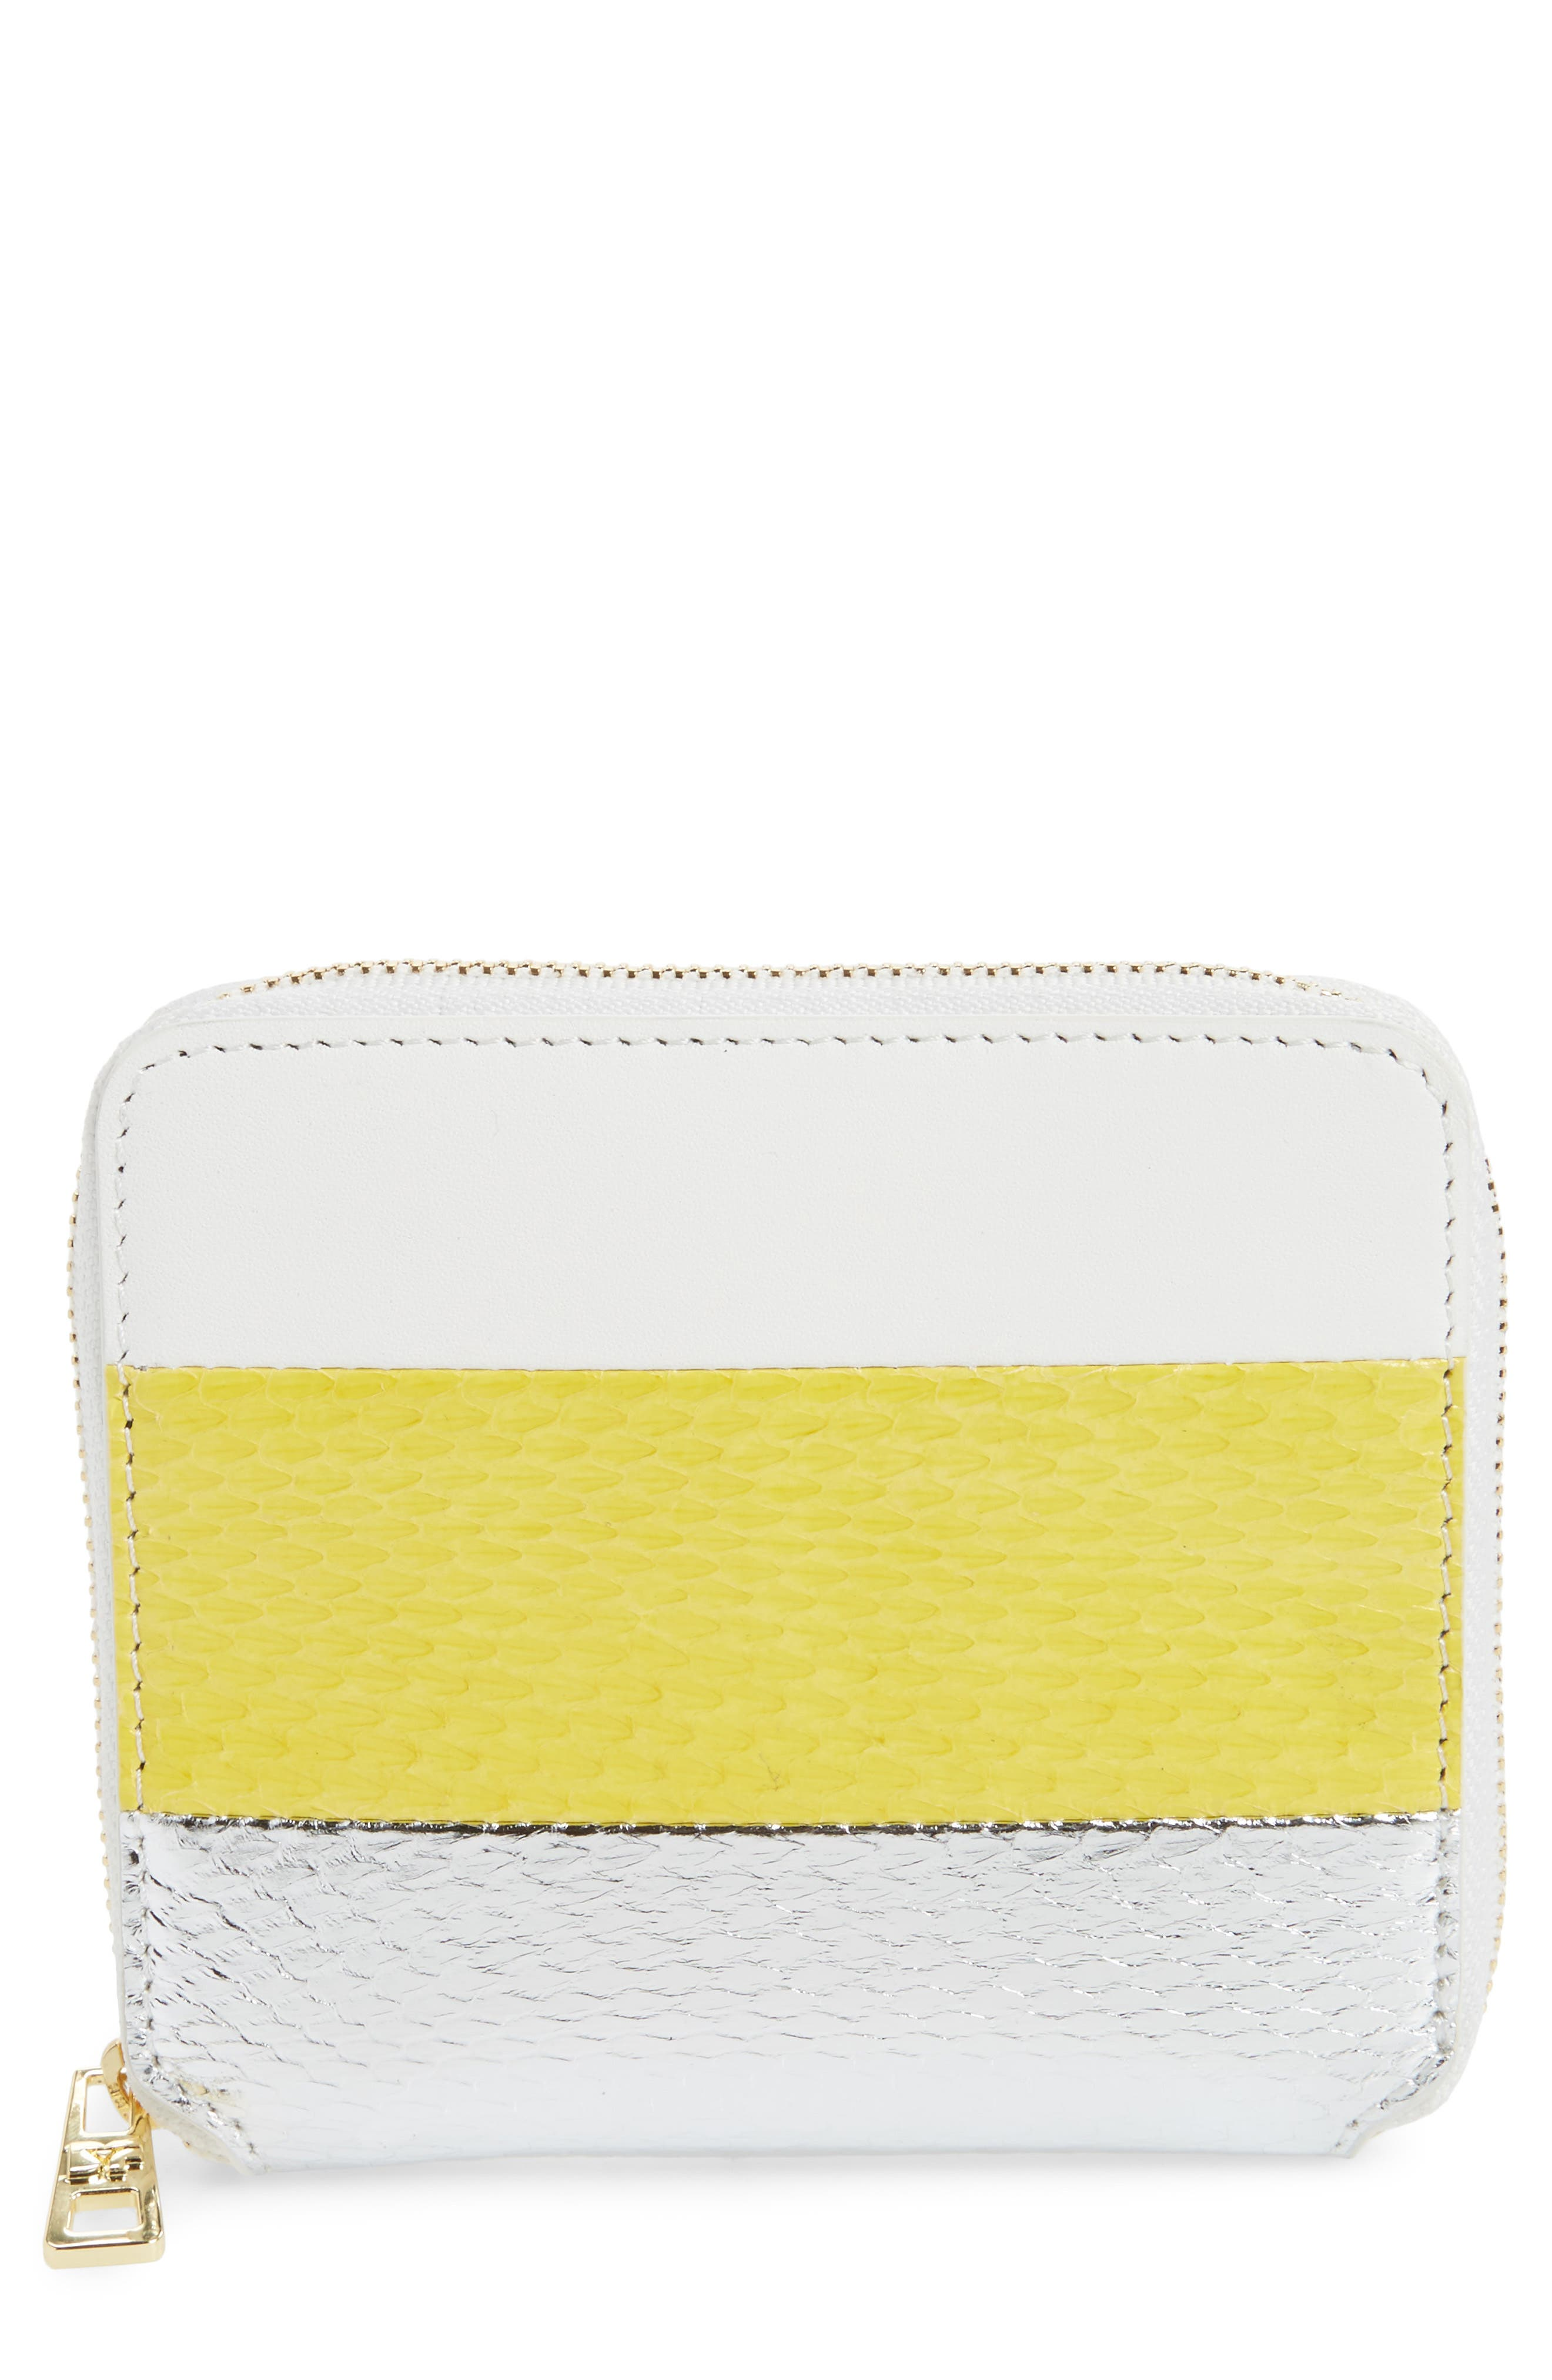 Small Leather & Genuine Snakeskin Zip Wallet,                         Main,                         color, Yellow/ Silver/ White